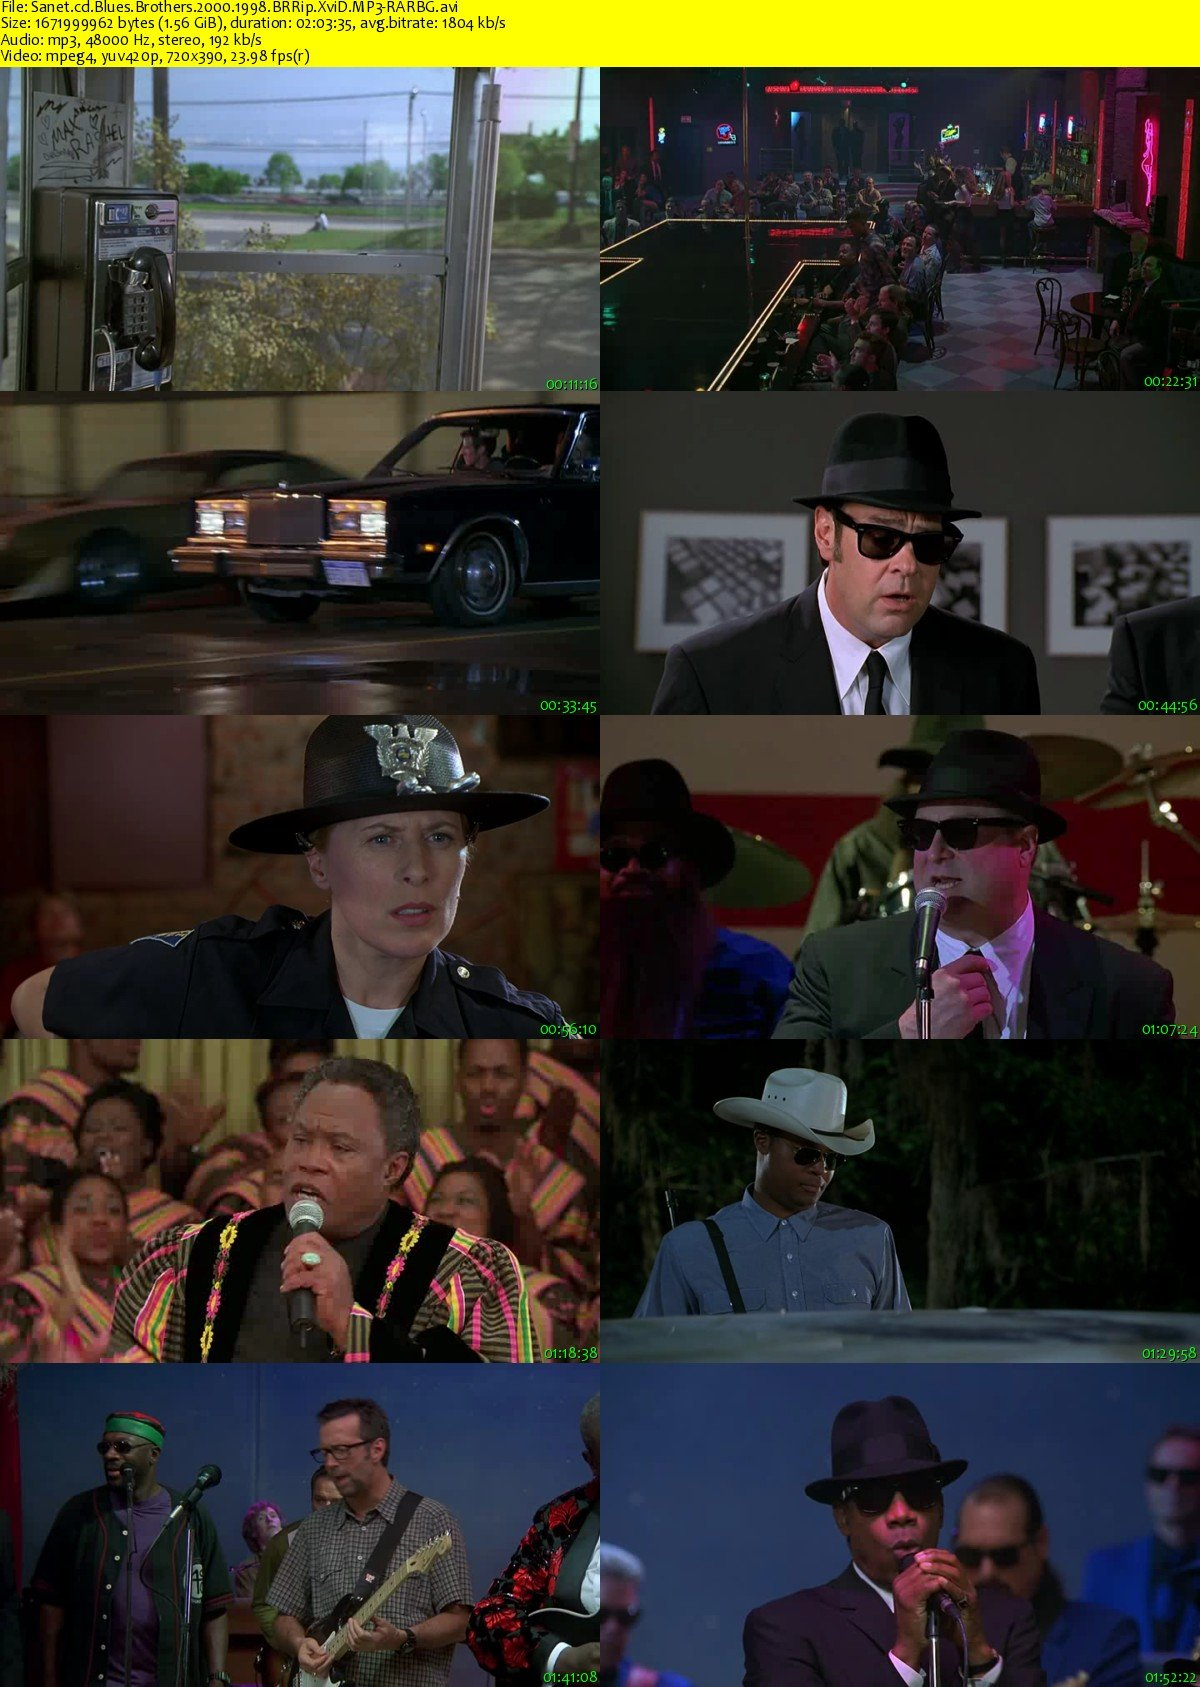 Blues Brothers   - Trailer - YouTube